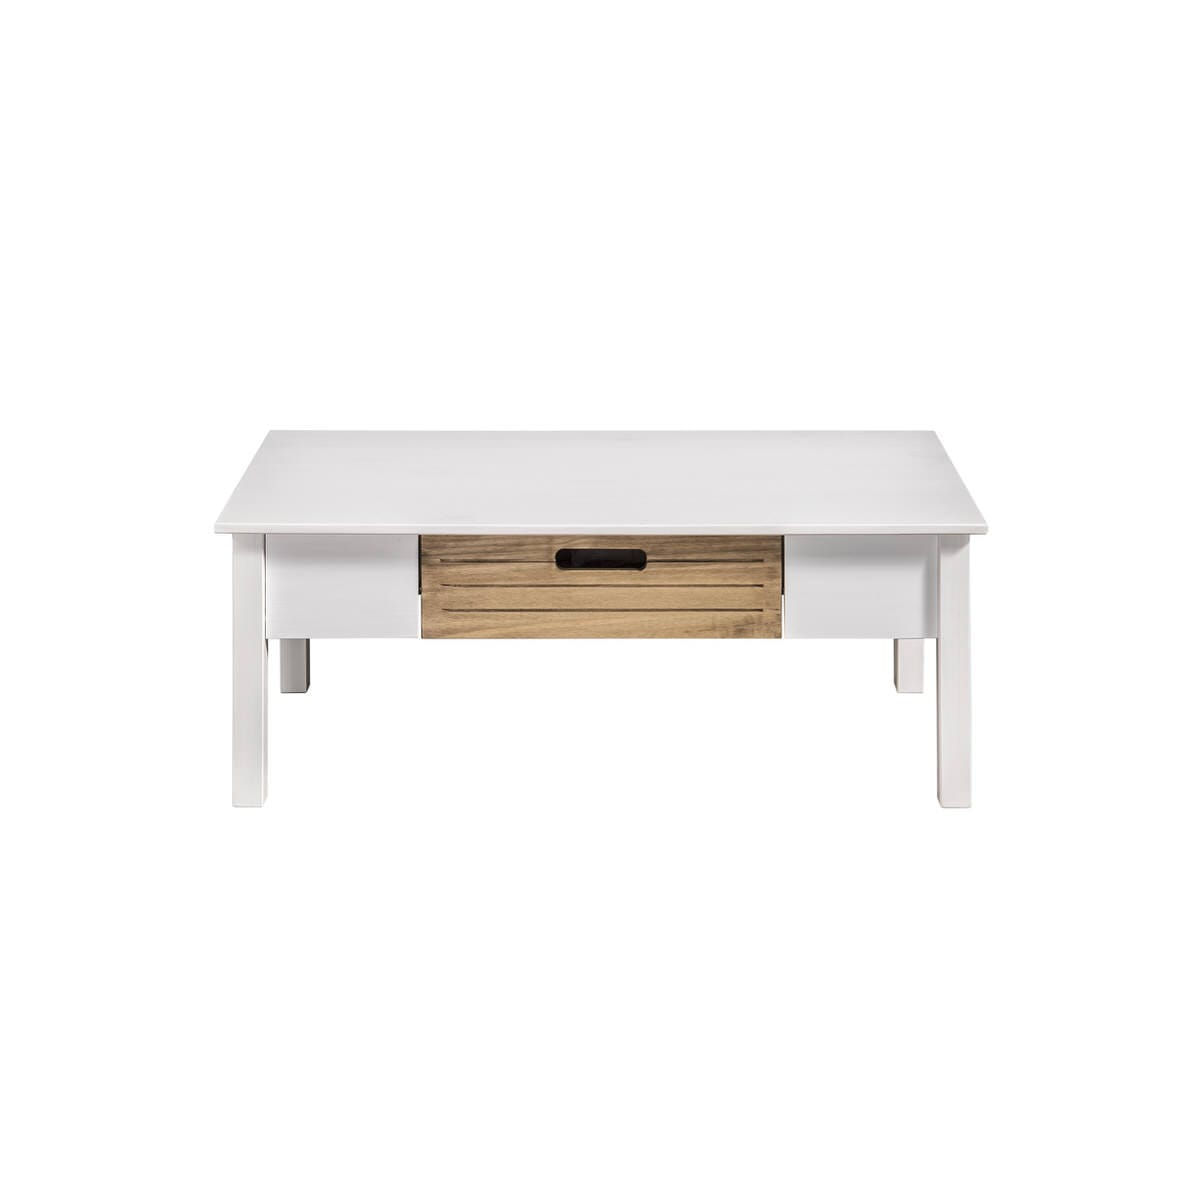 Irving Rustic Mid Century Modern White Natural Wood Coffee